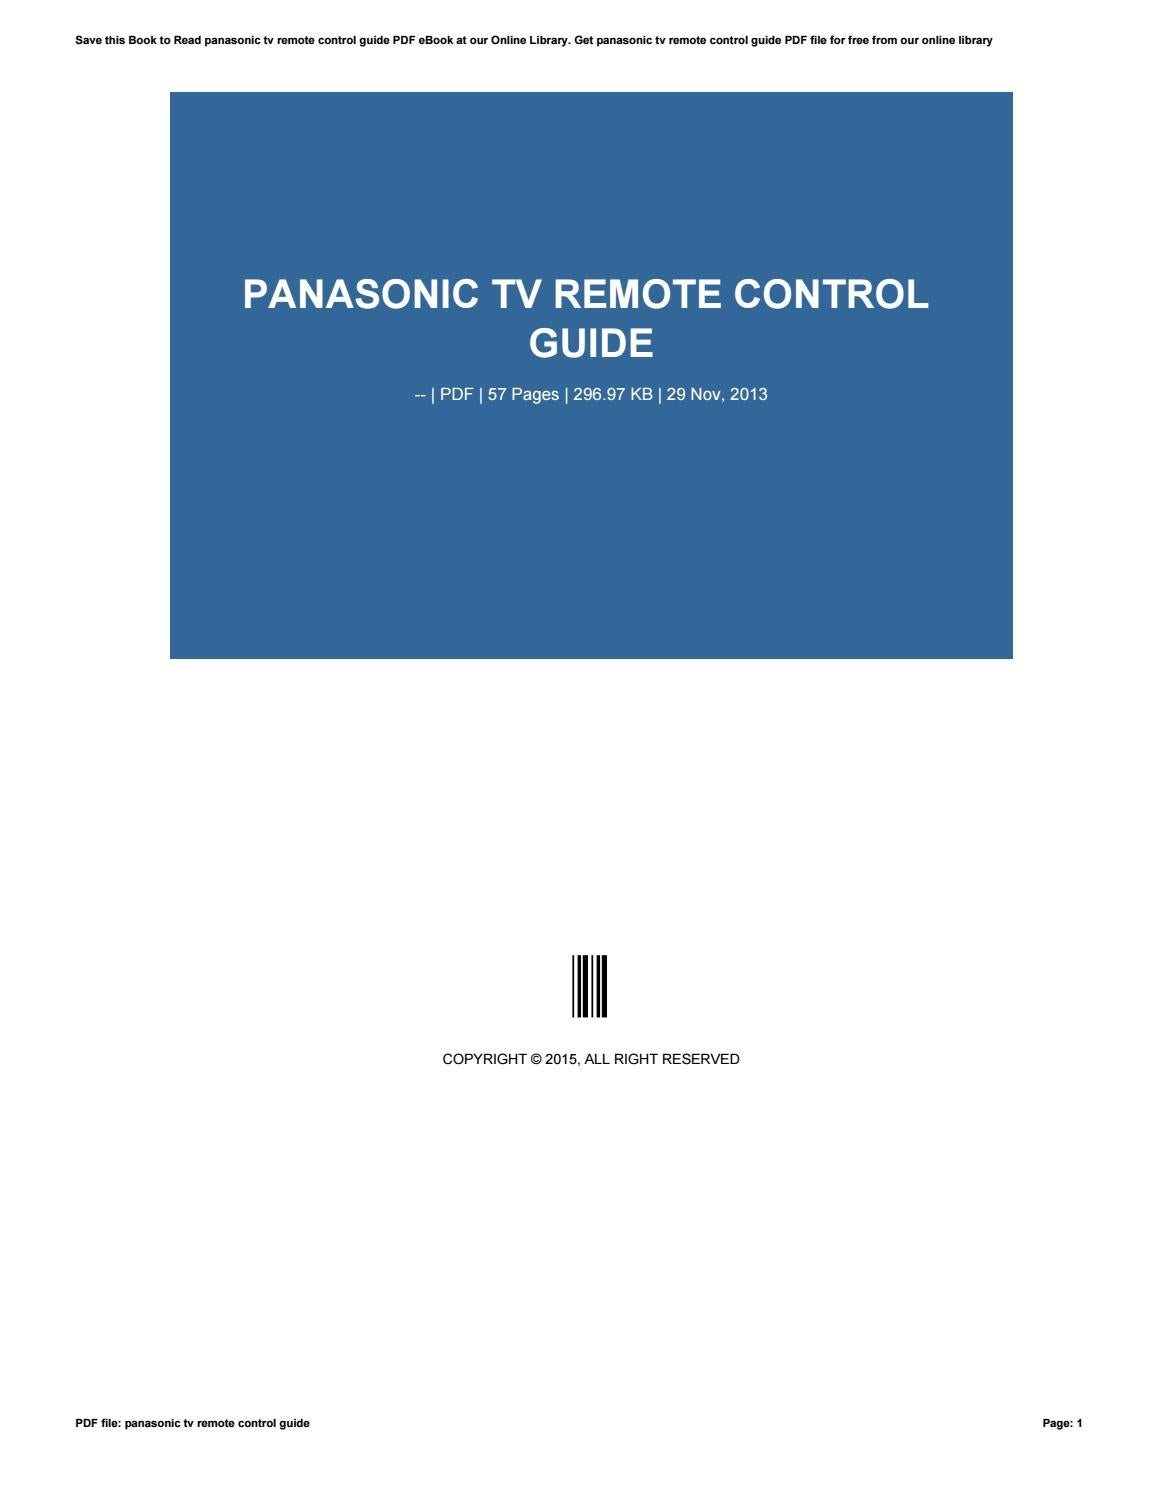 Panasonic tv remote control guide by i329 - issuu